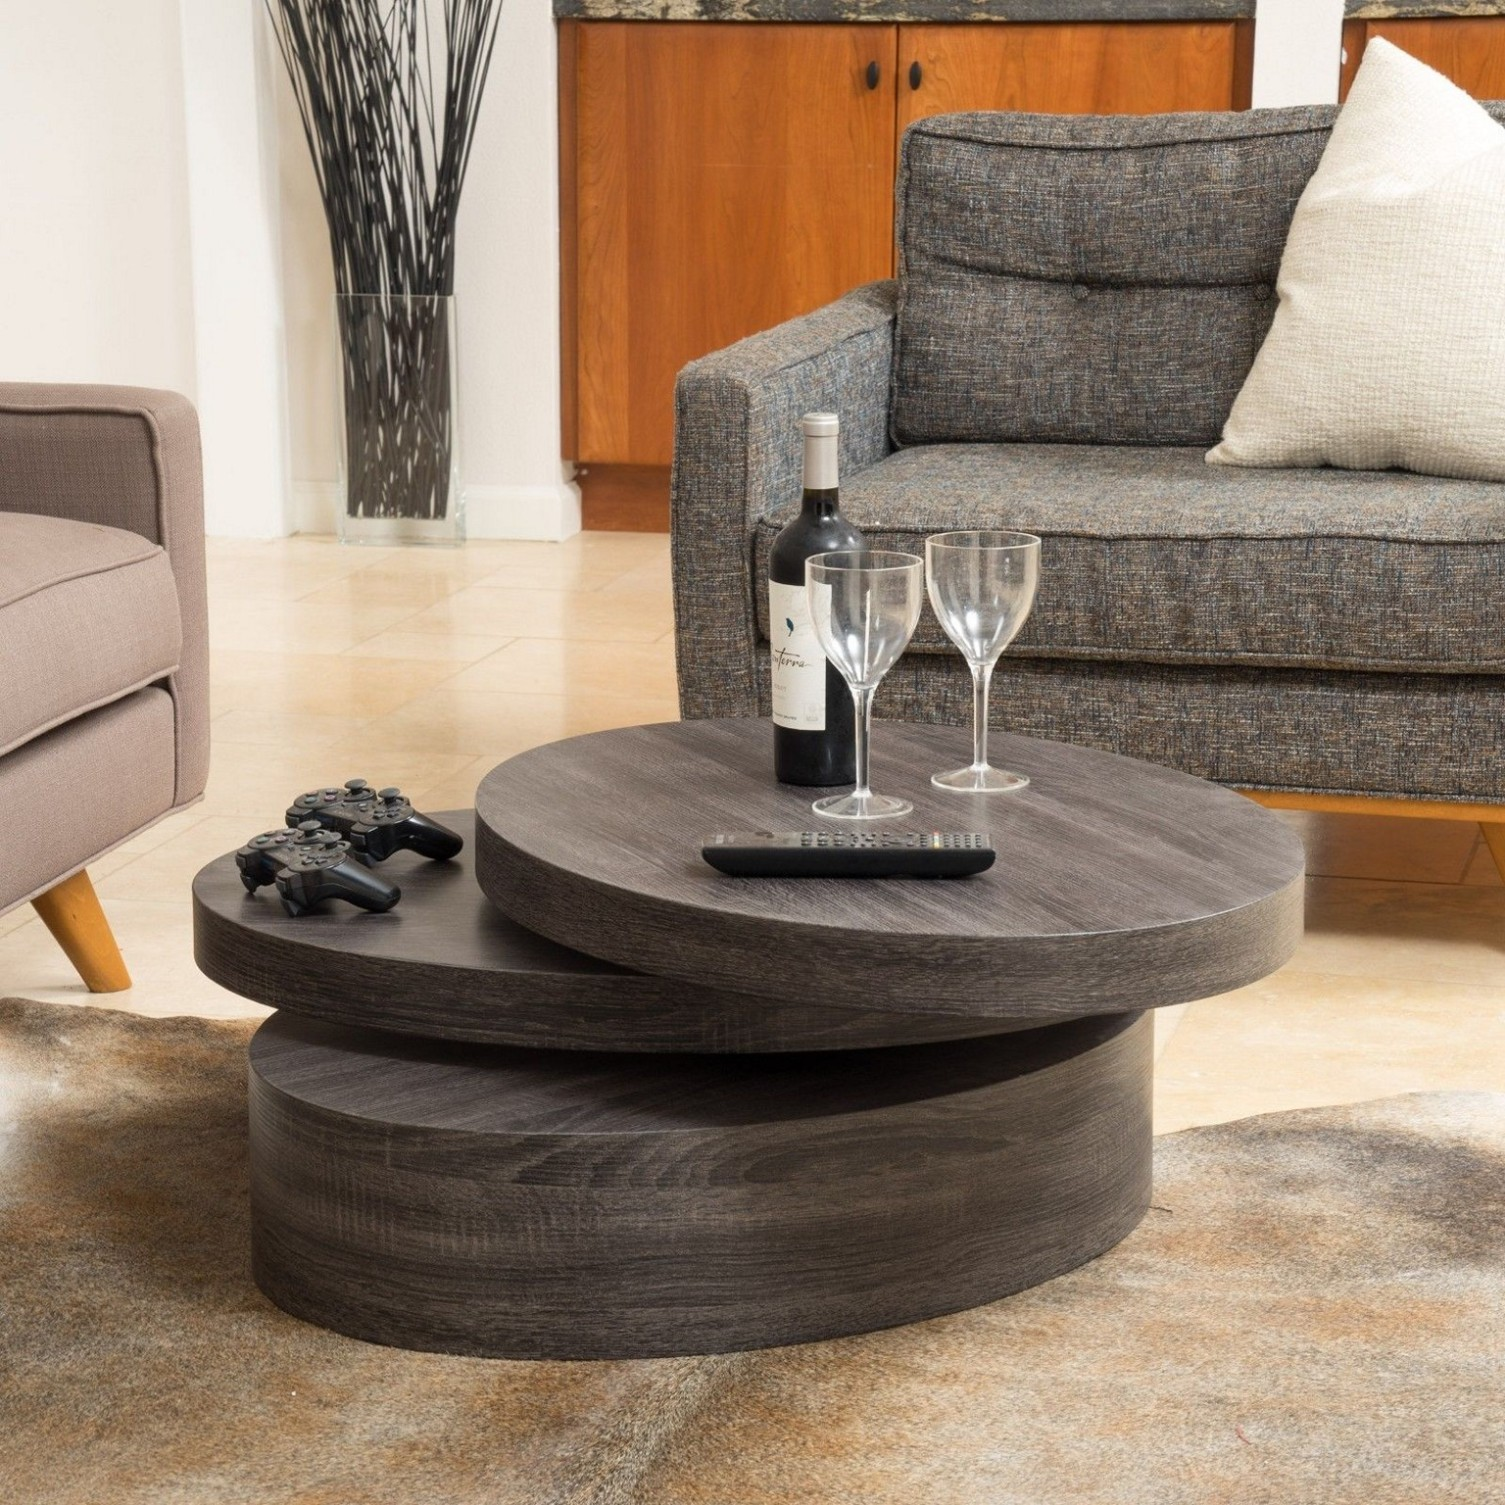 Stylish Sofa Round Coffee Tables For Smooth Comfortable And Stylish